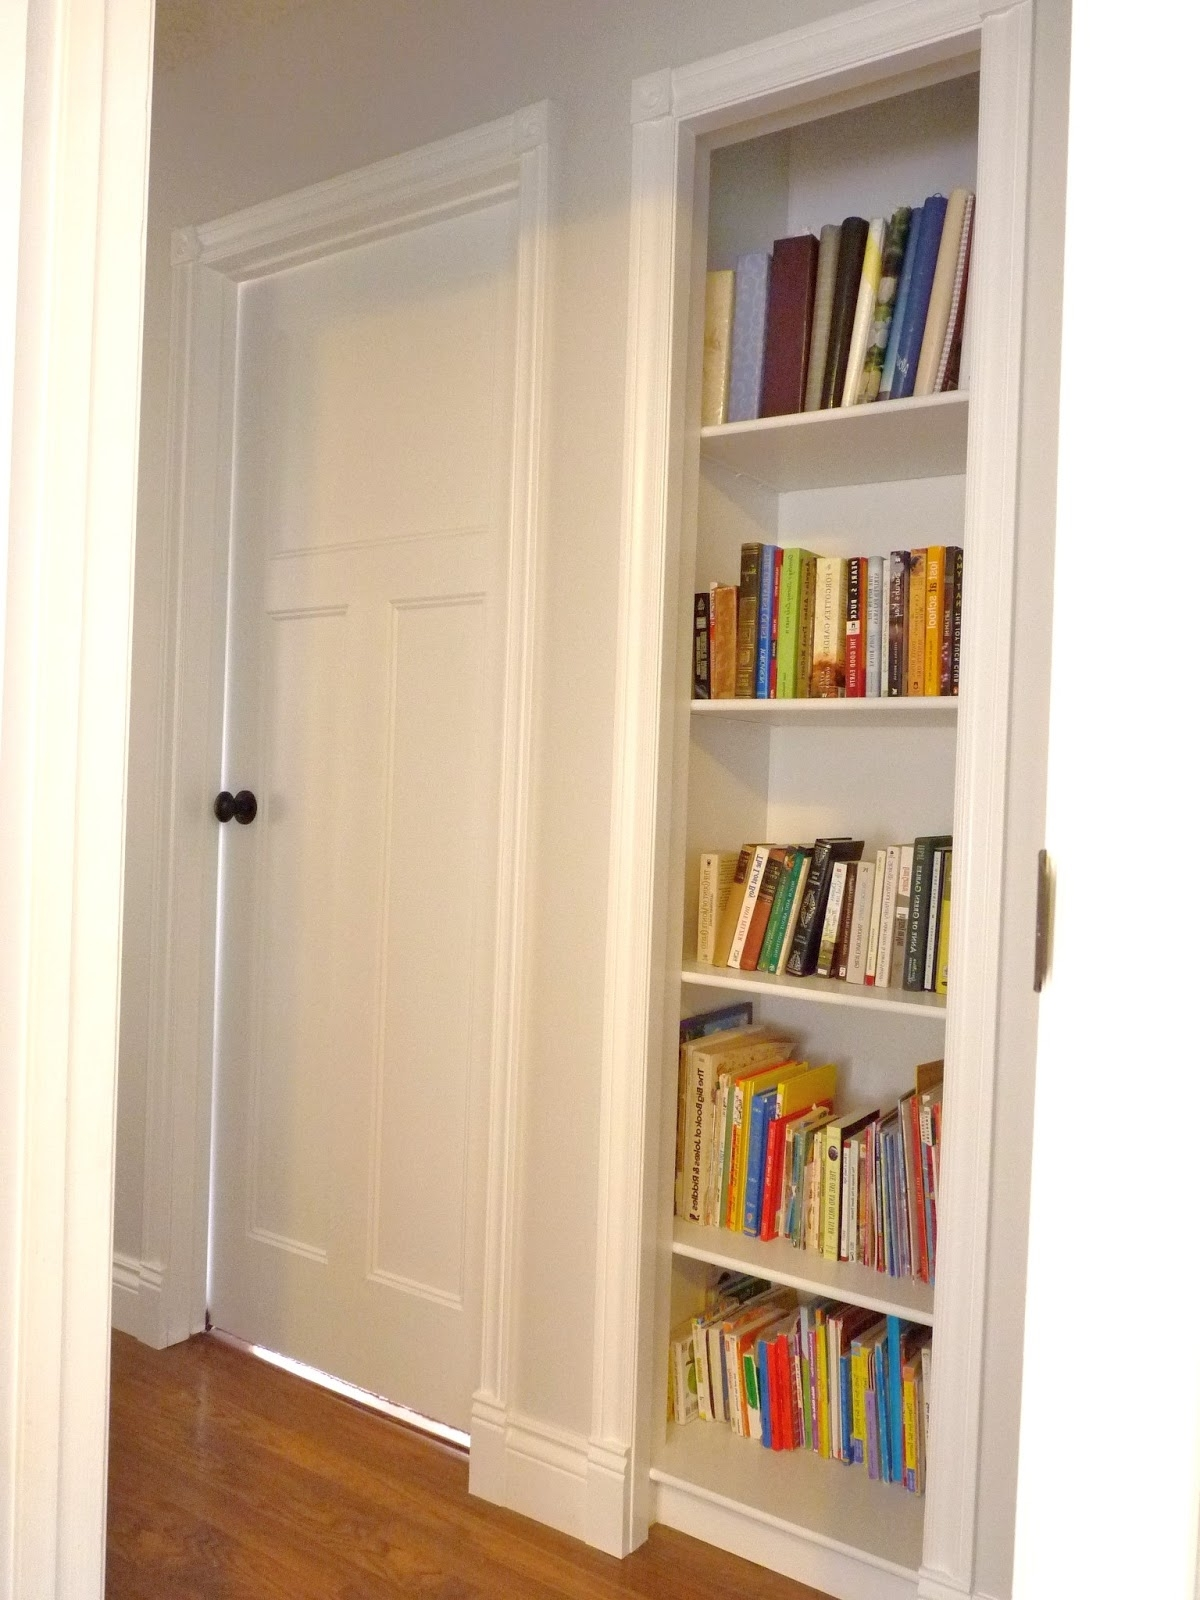 D I Y D E S I G N: Closet Bookshelf Throughout Well Liked Bookcases Cupboard (View 7 of 15)